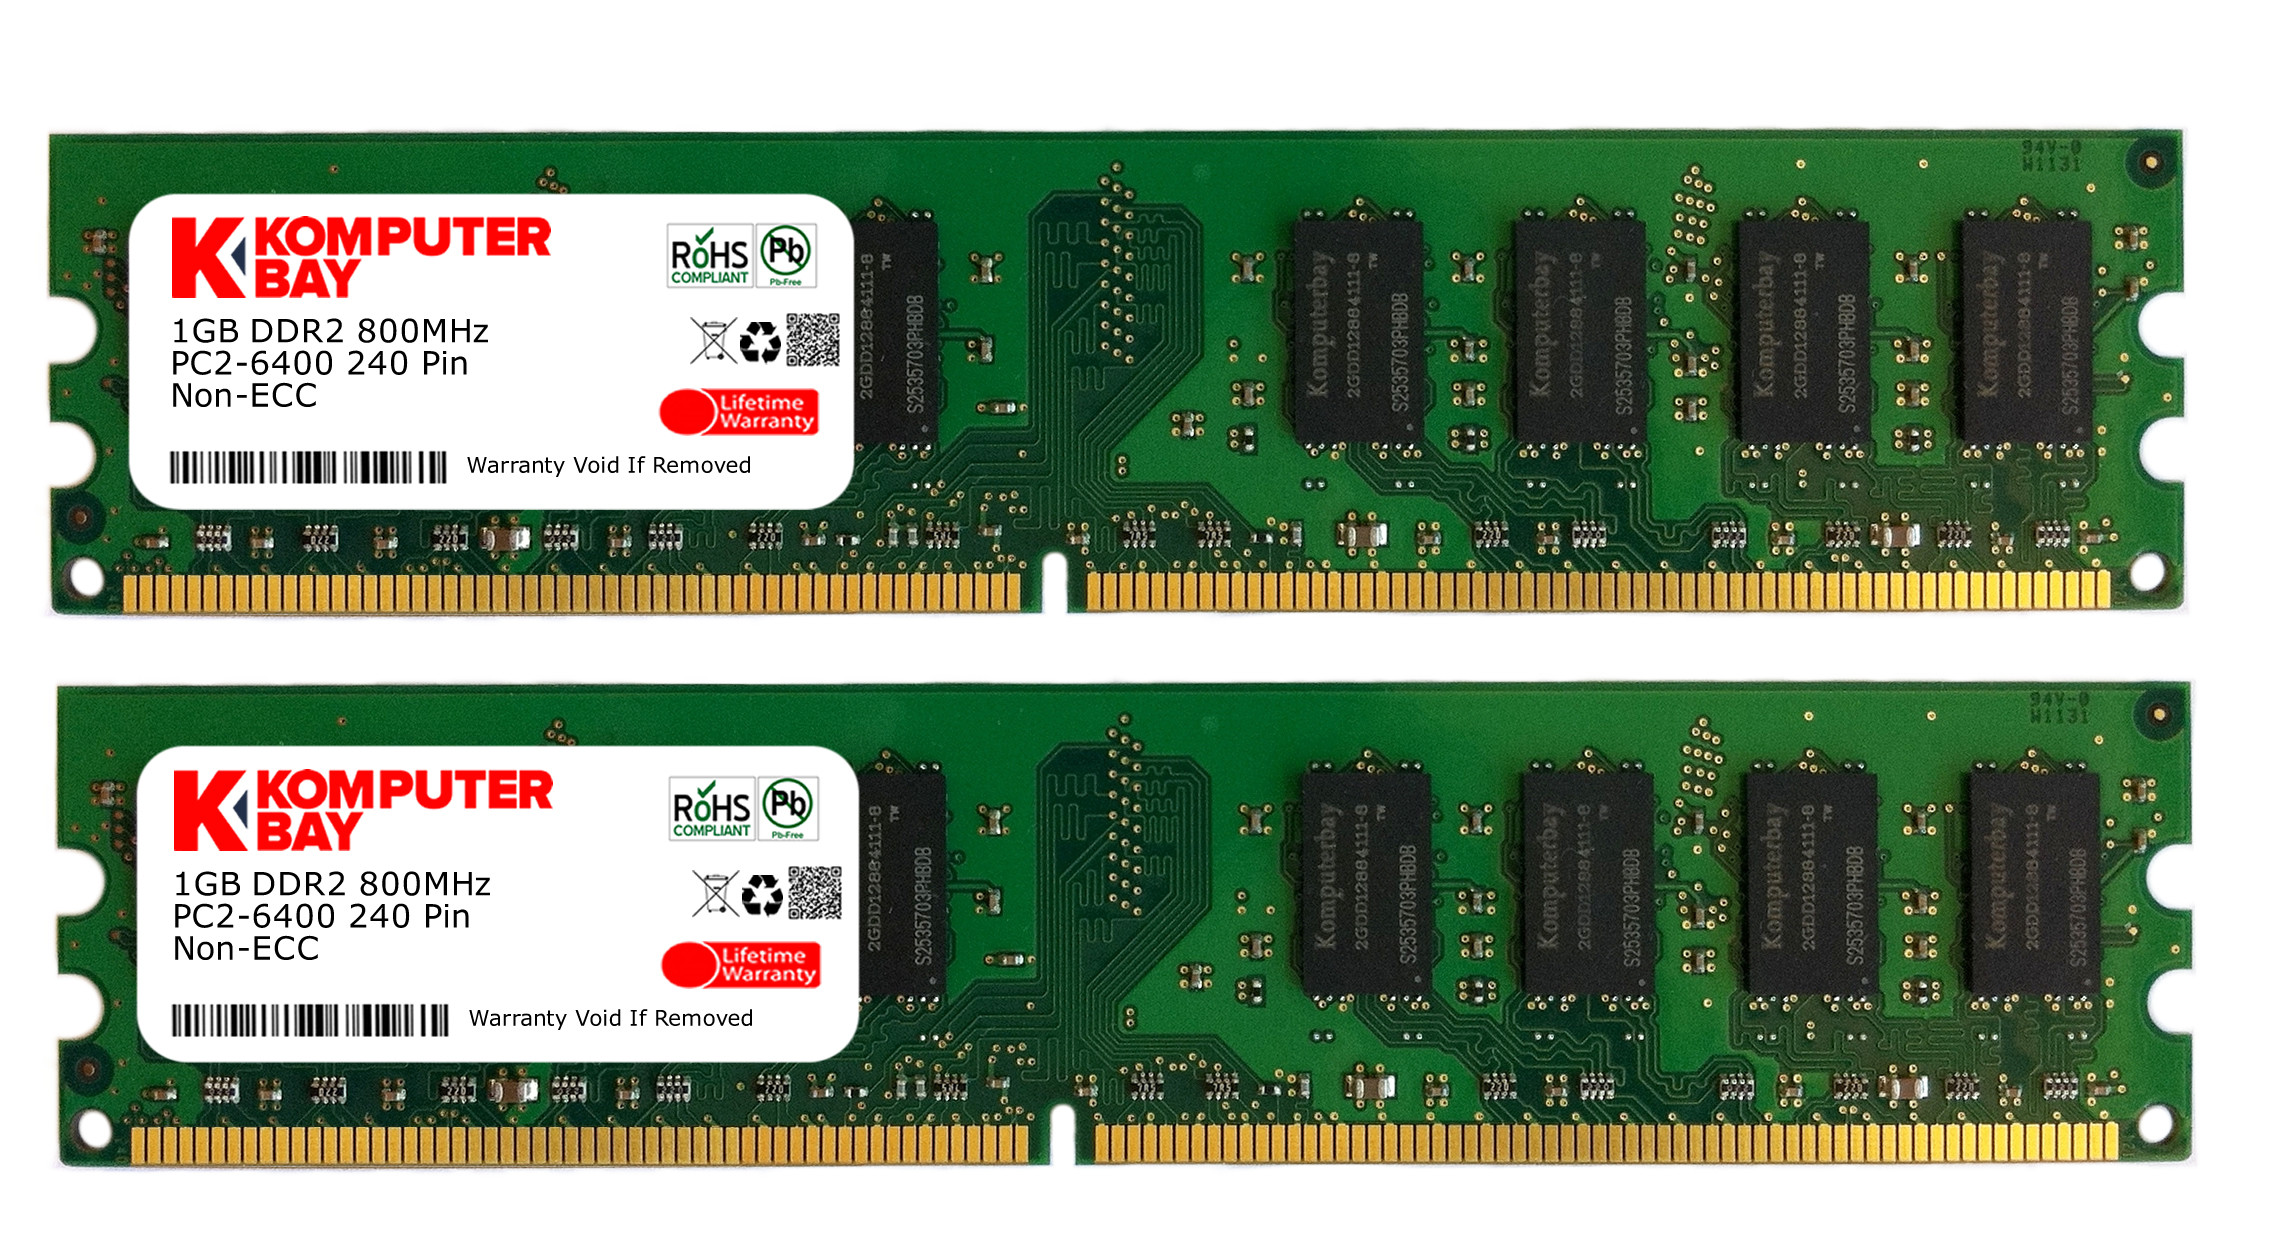 Komputerbay 2gb 2x 1gb Ddr2 800mhz Pc2 6300 6400 800 240 Ram Memori Pake Hedsink Close